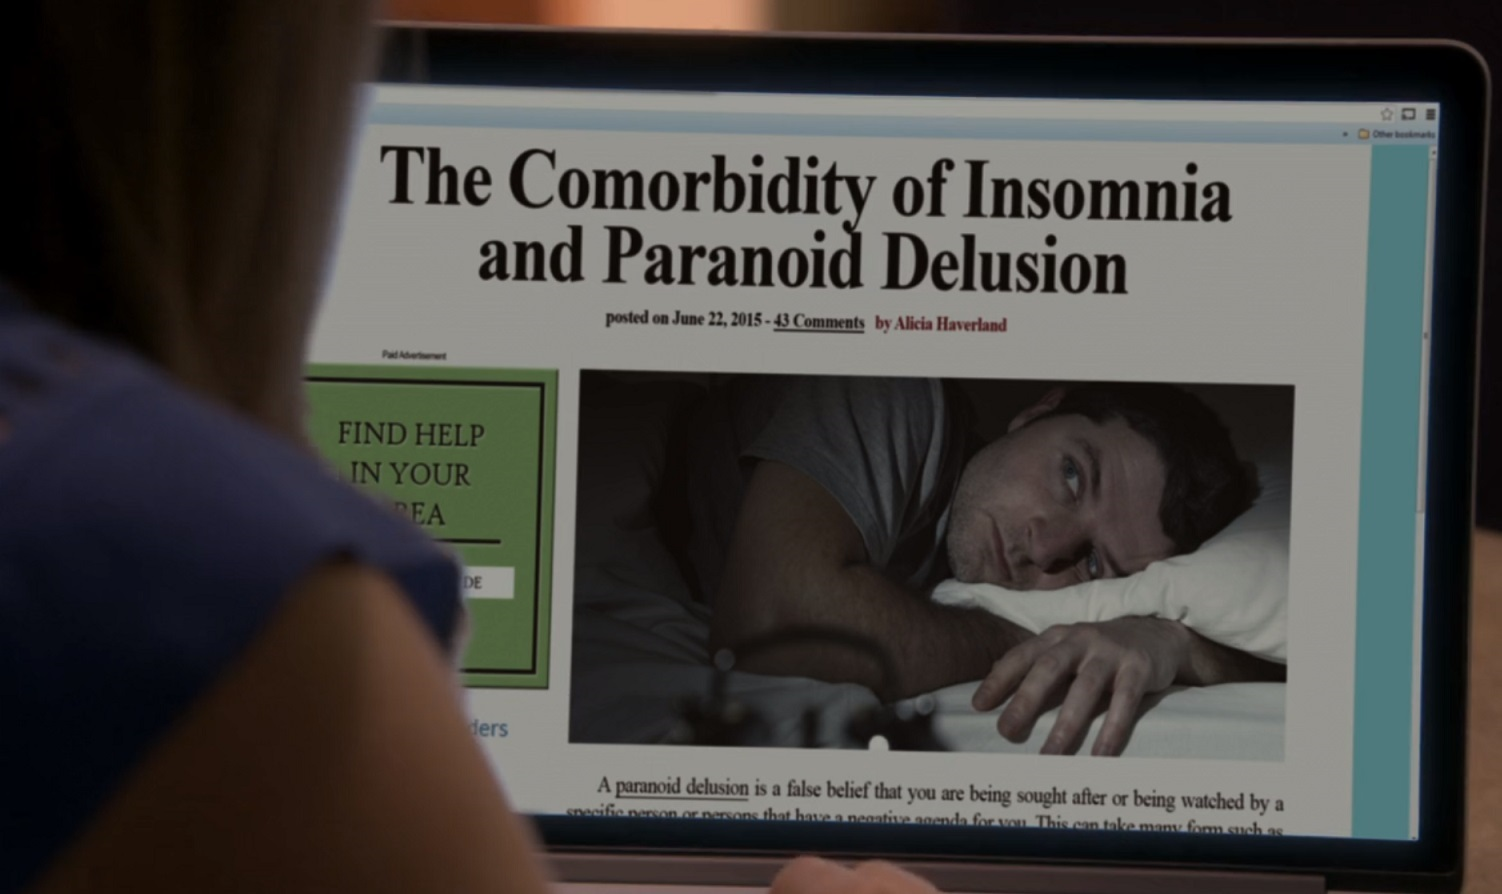 The Comorbidity of Insomnia and Paranoid Delusion